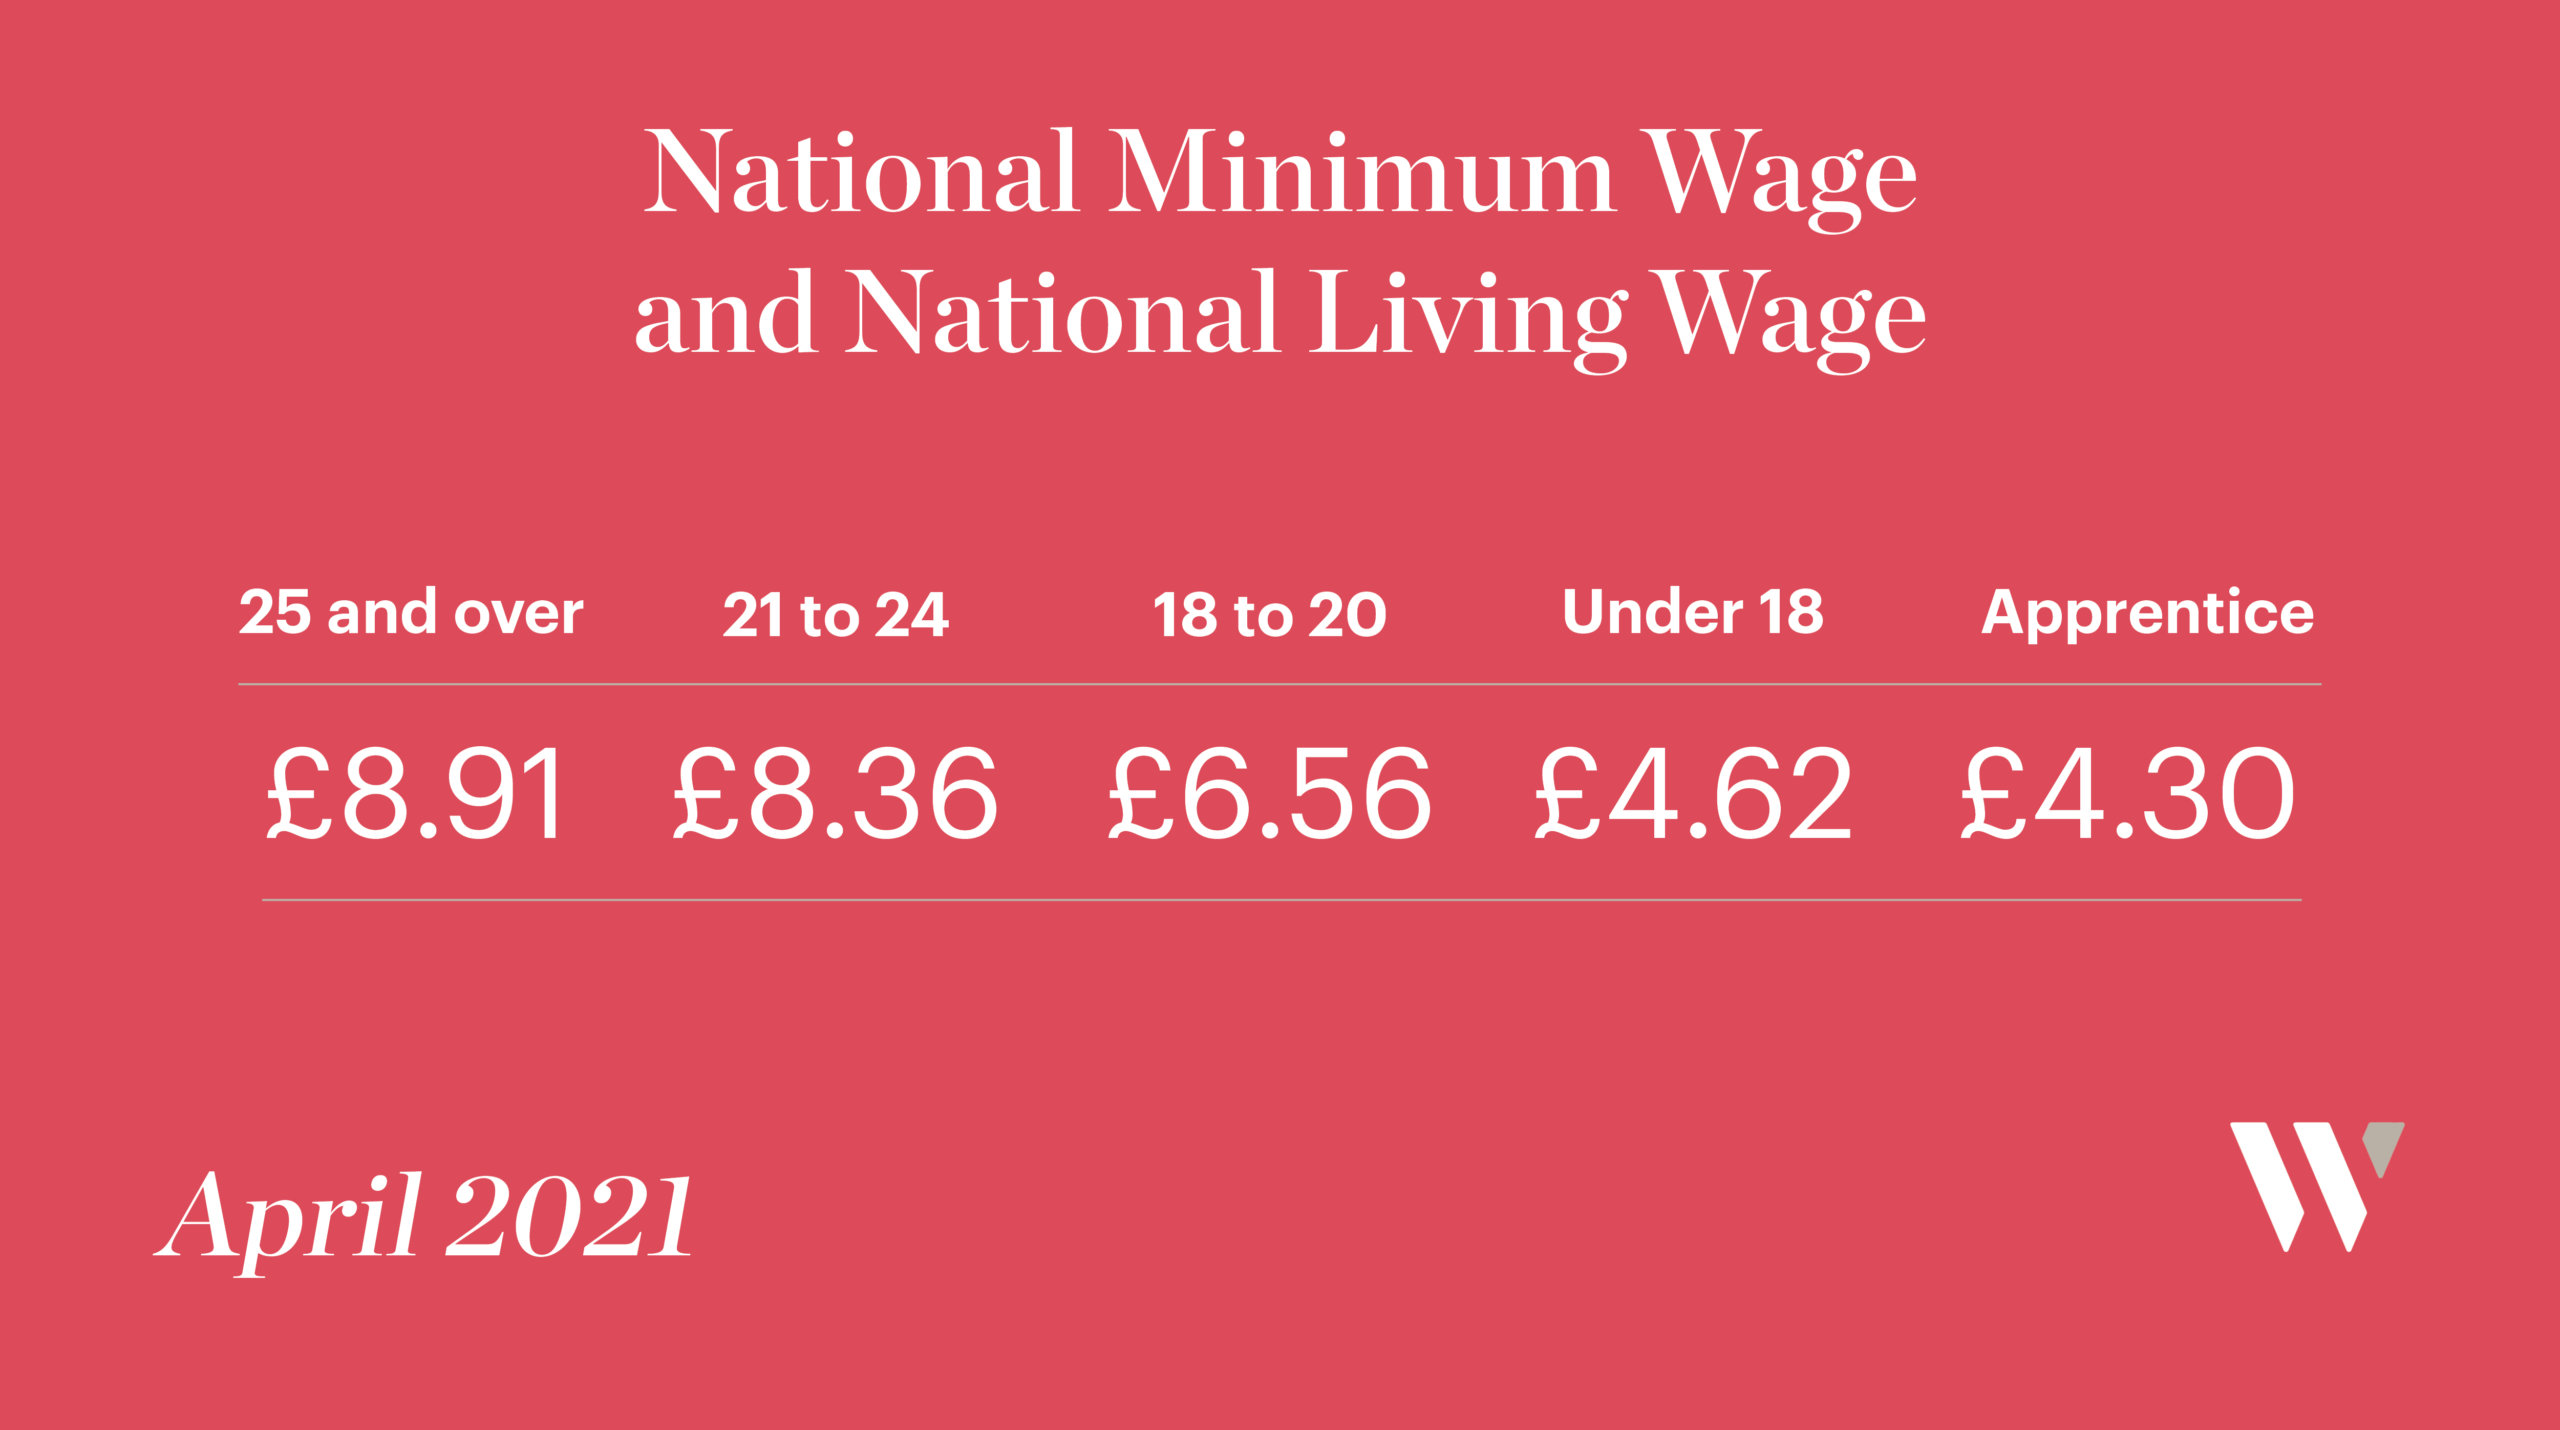 National Minimum Wage and National Living Wage April 2021